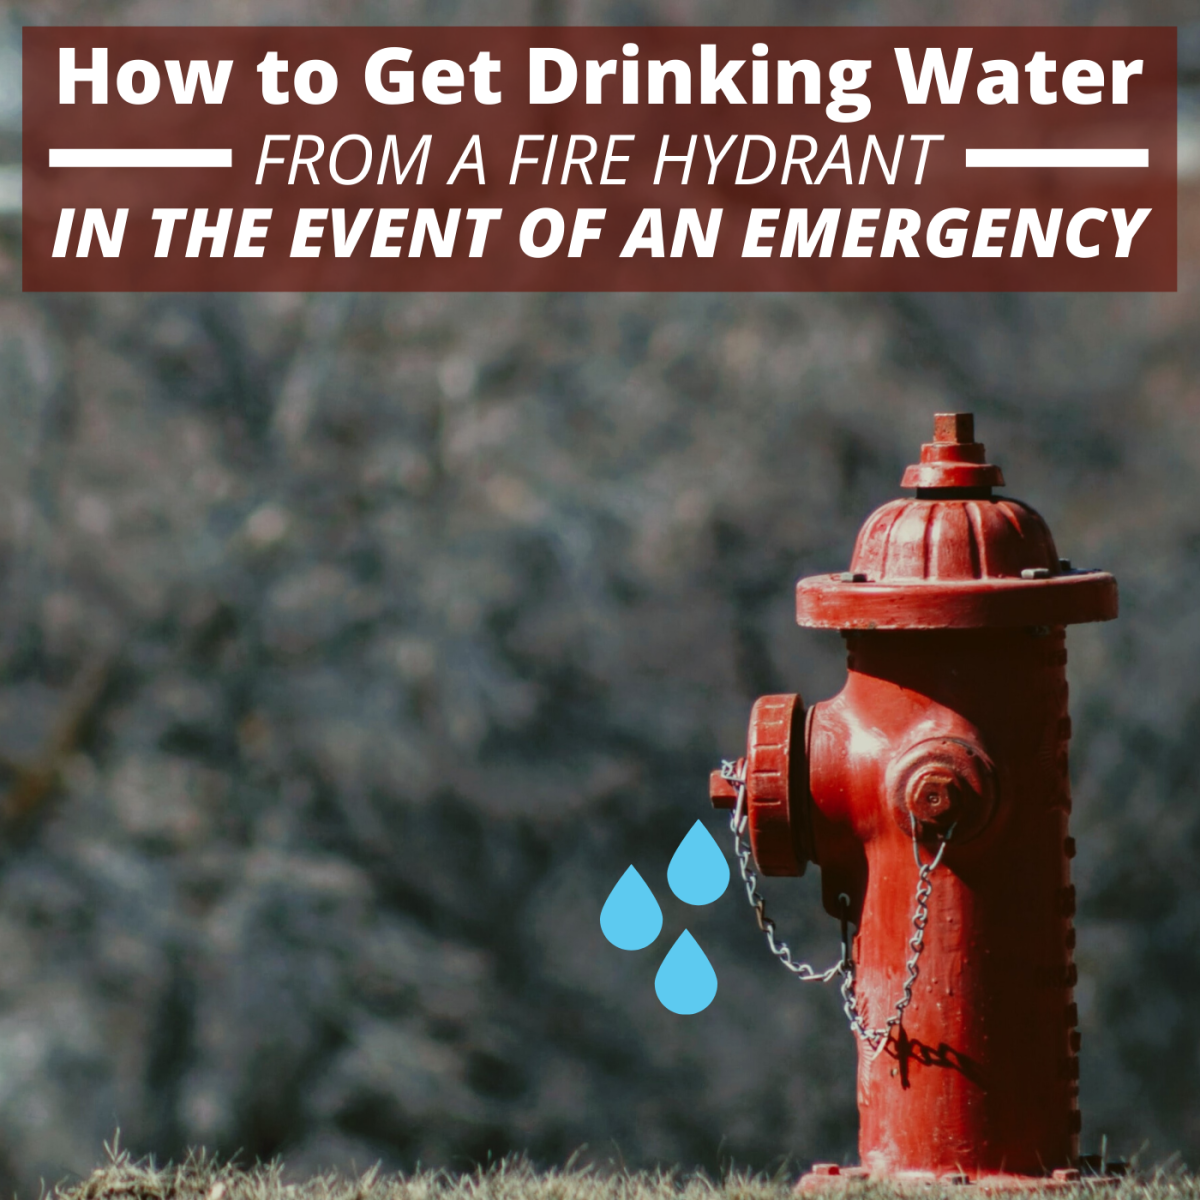 Never attempt to open a fire hydrant for water unless you are in an emergency situation and have the needed supervision.